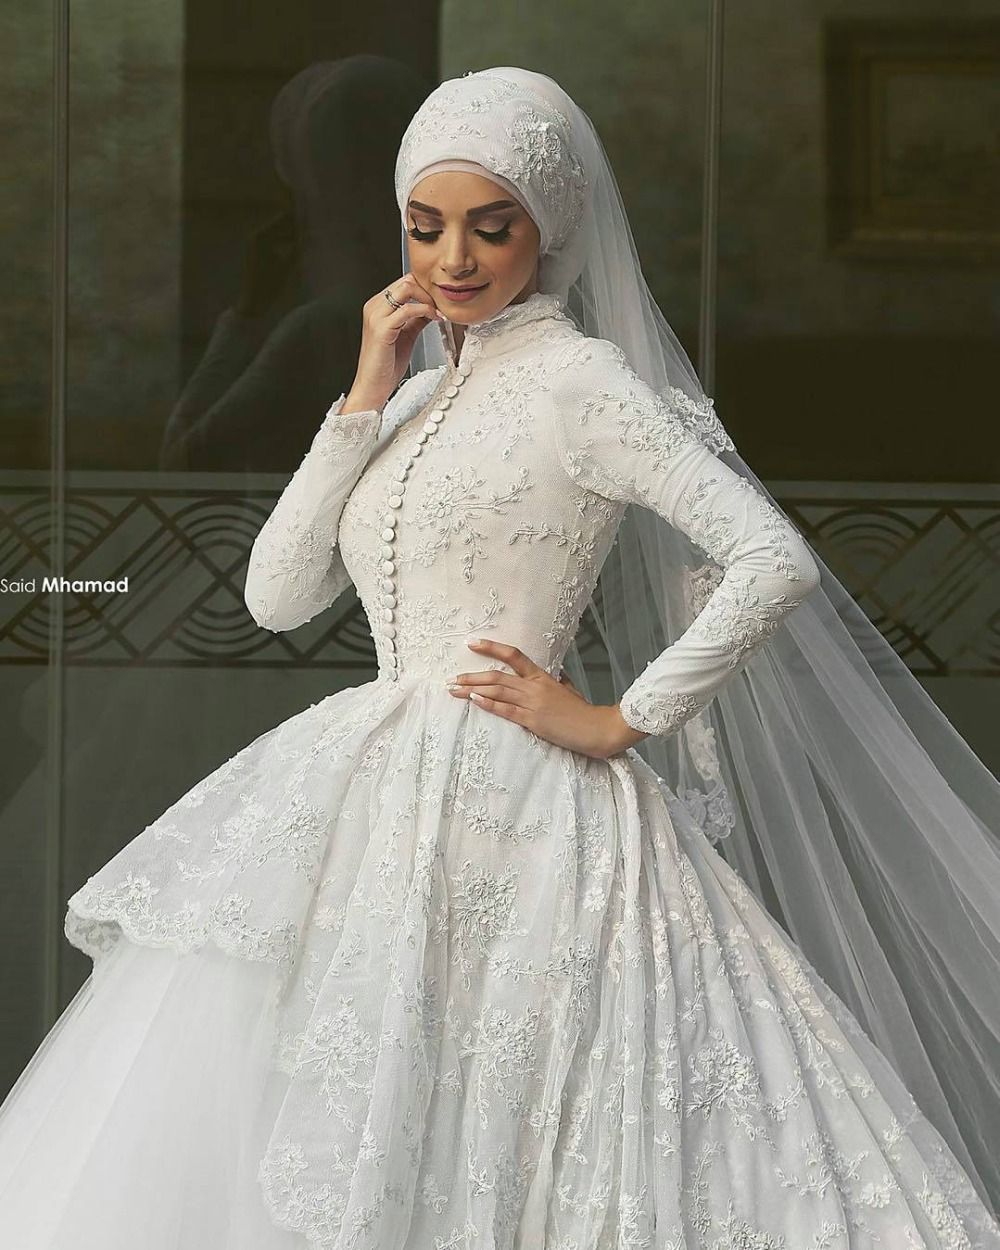 2017 Muslim Wedding Dresses With Long Sleeves Appliqued High Neck Arabic Hijab Dress Lace Ball Gown Said Mhamad Designer